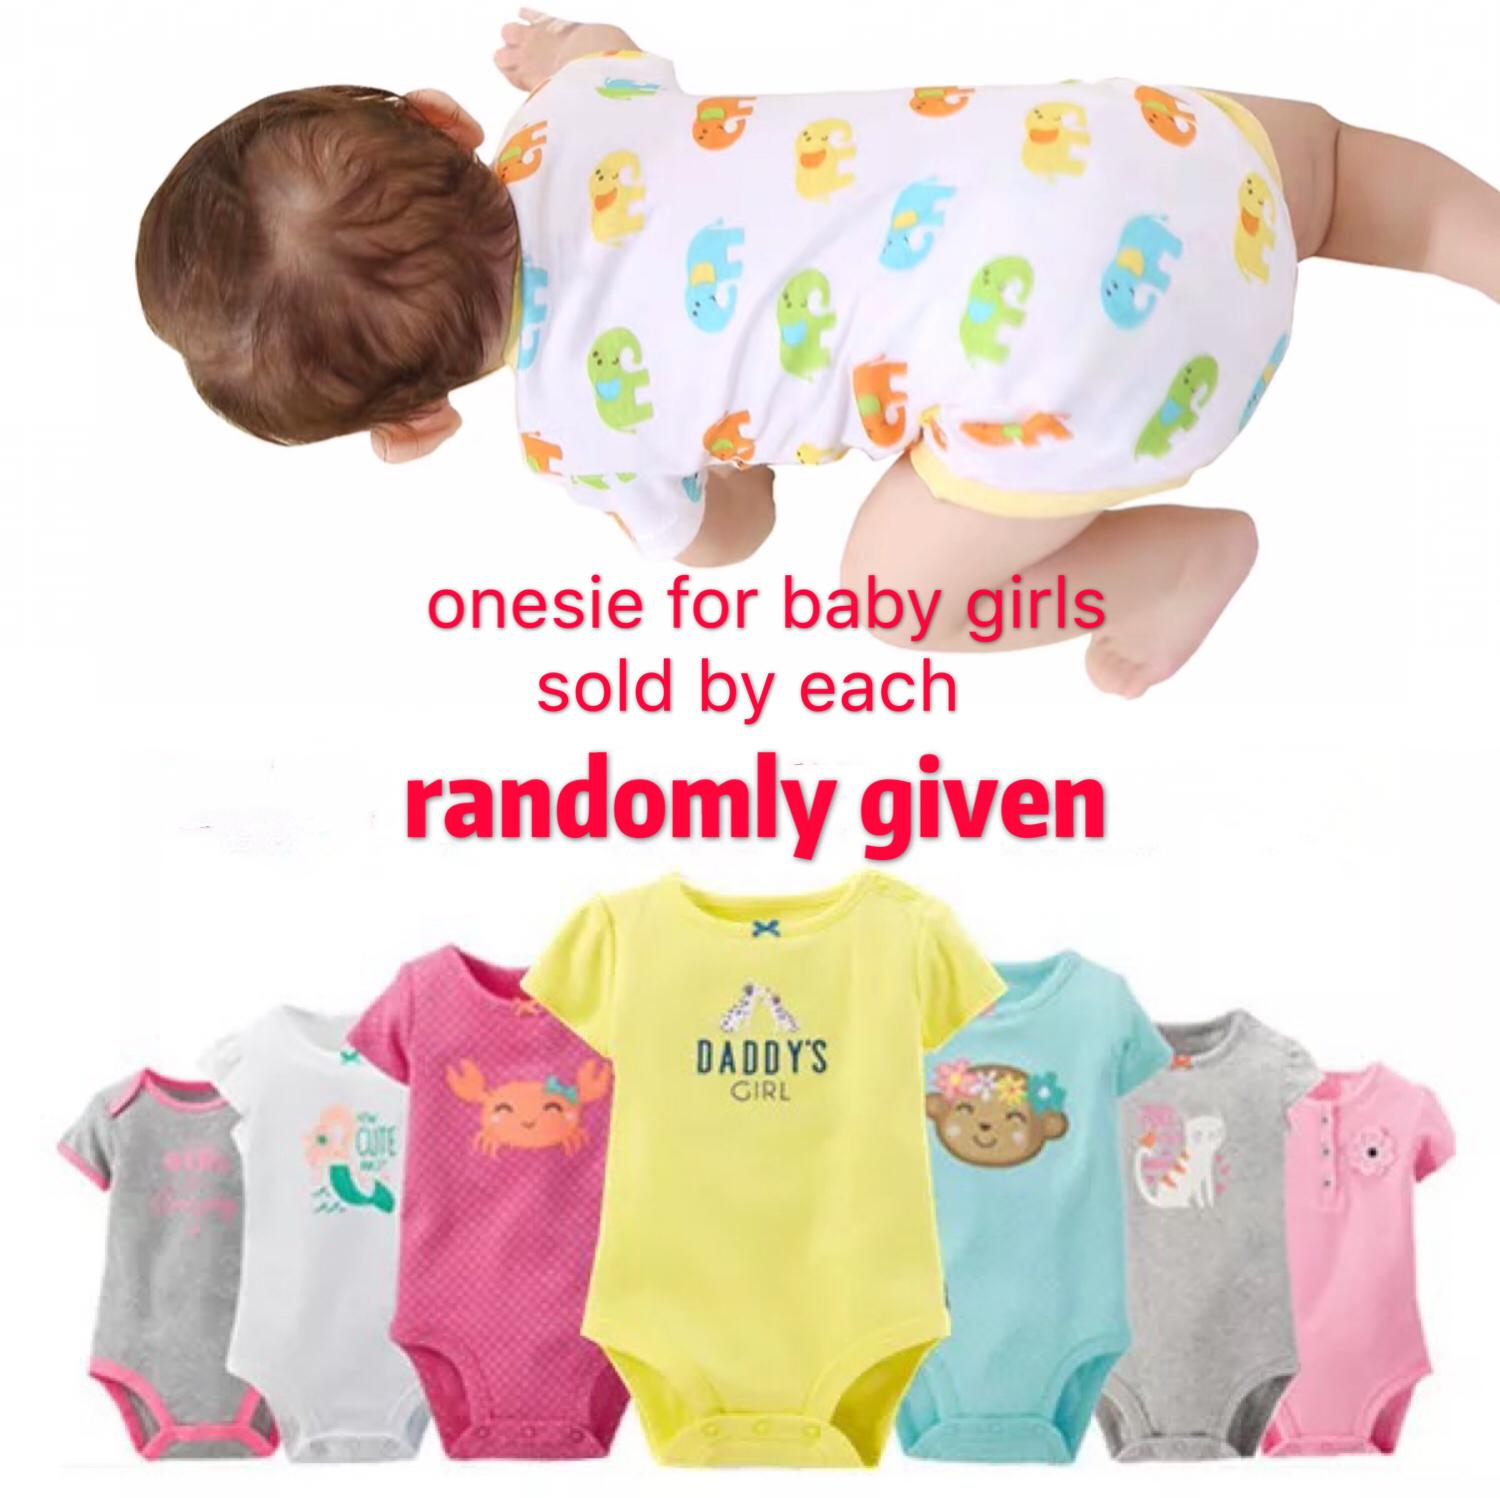 8341ab8b4 Newborn Clothes for sale - Newborn Baby Clothes Online Deals & Prices in  Philippines | Lazada.com.ph